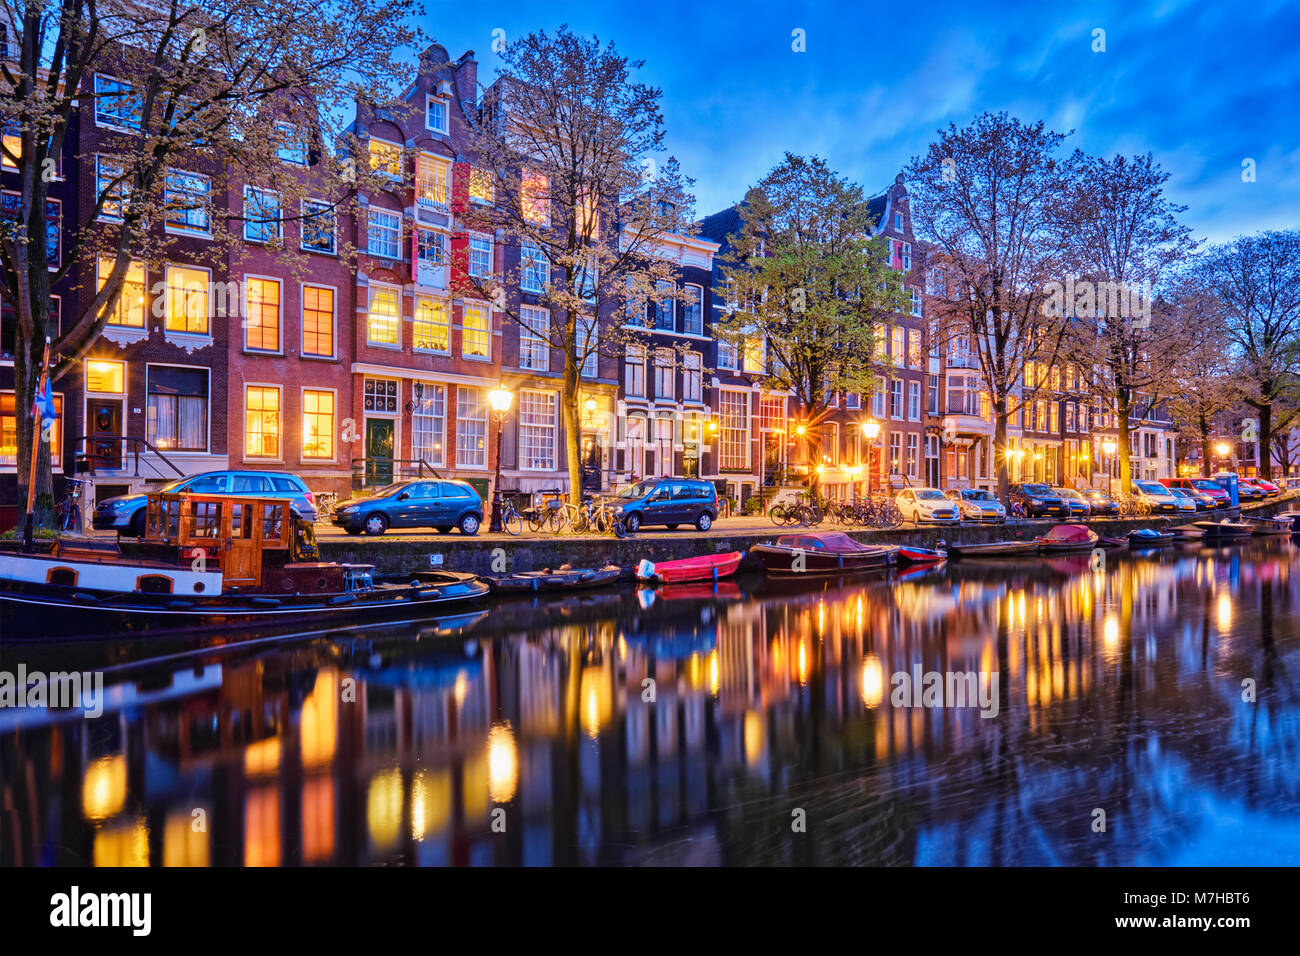 Amterdam canal, boats and medieval houses in the evening - Stock Image